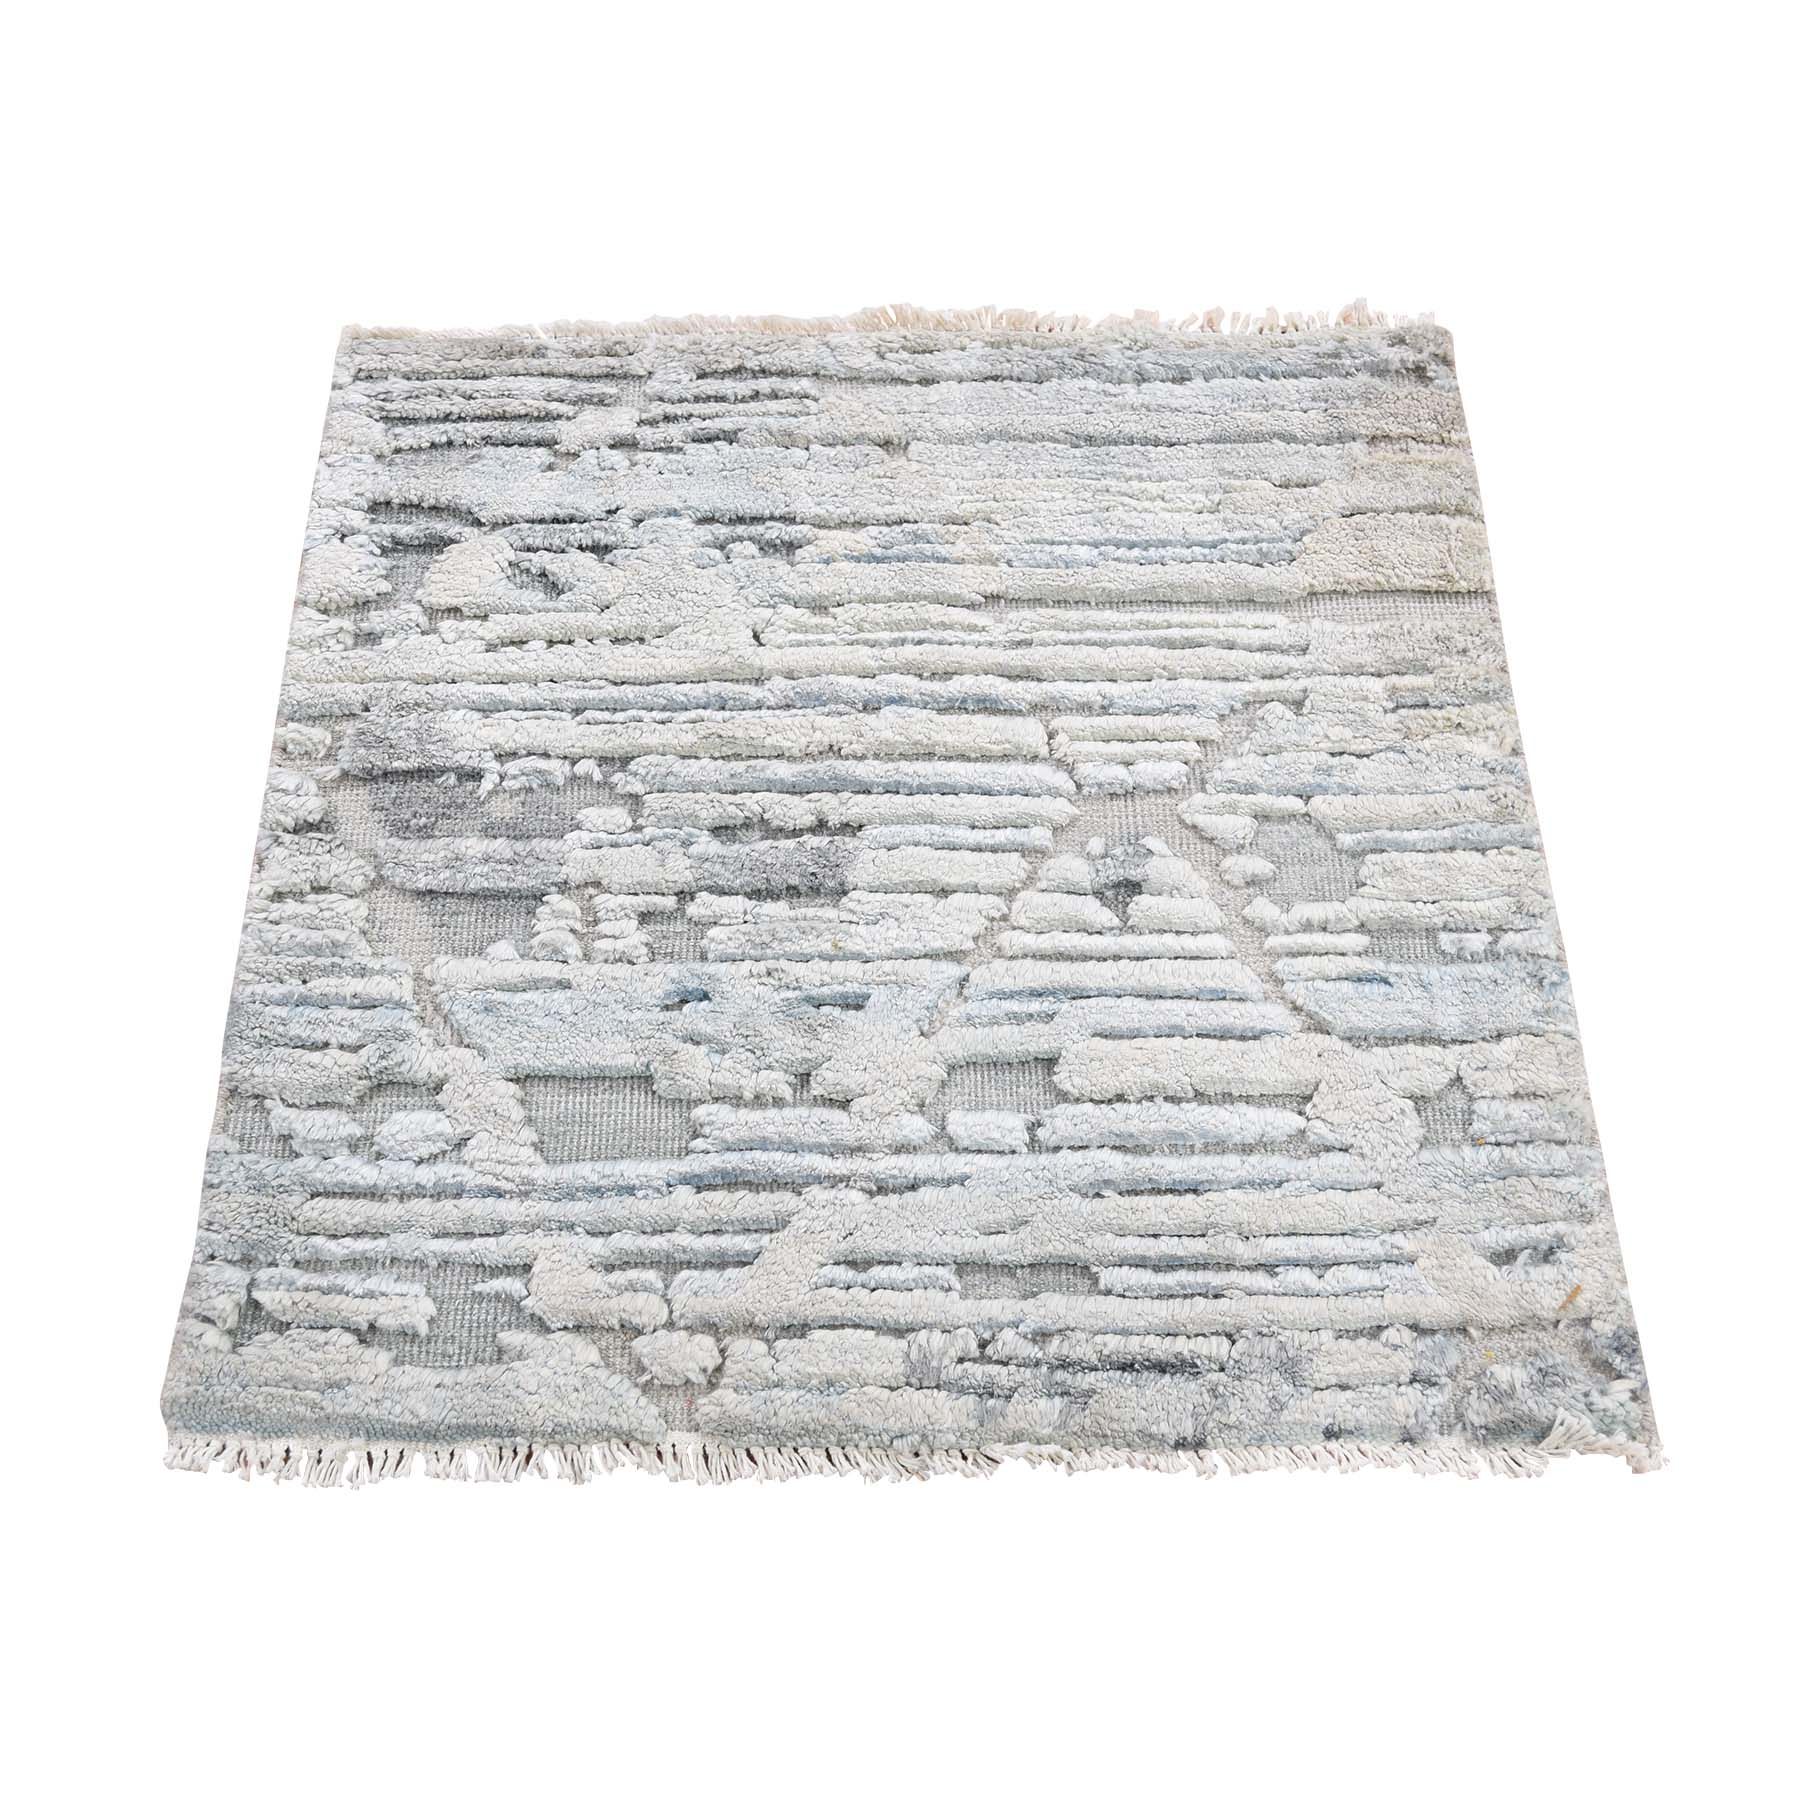 "2'X2'1"" Sampler Luxurious Plush Pure Silk With Textured Wool Hand-Knotted Oriental Rug moad67be"